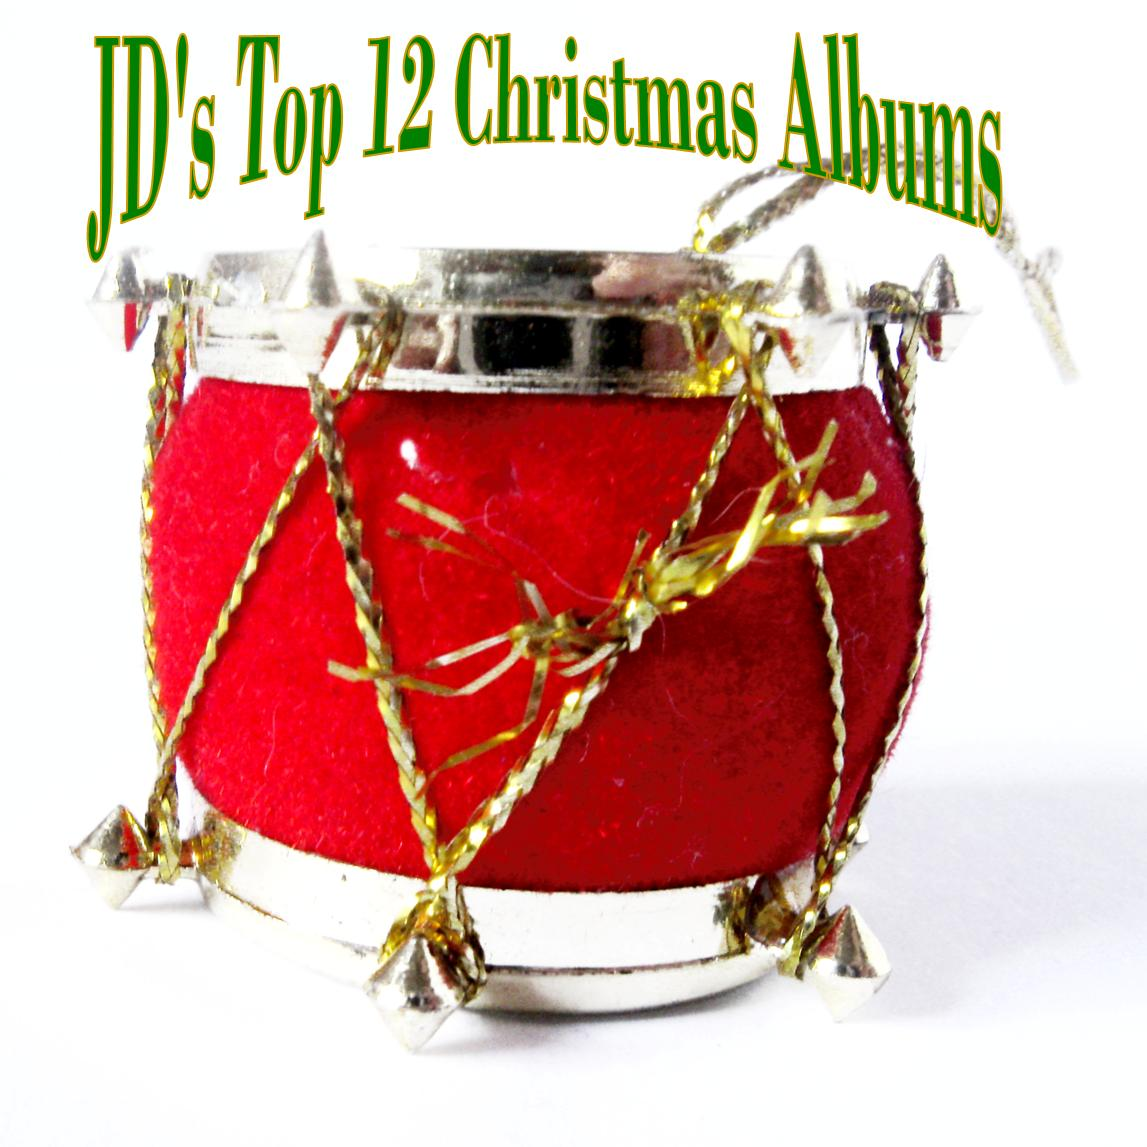 Christian Music Digest: Top 12 Christmas Albums by Christian Artists